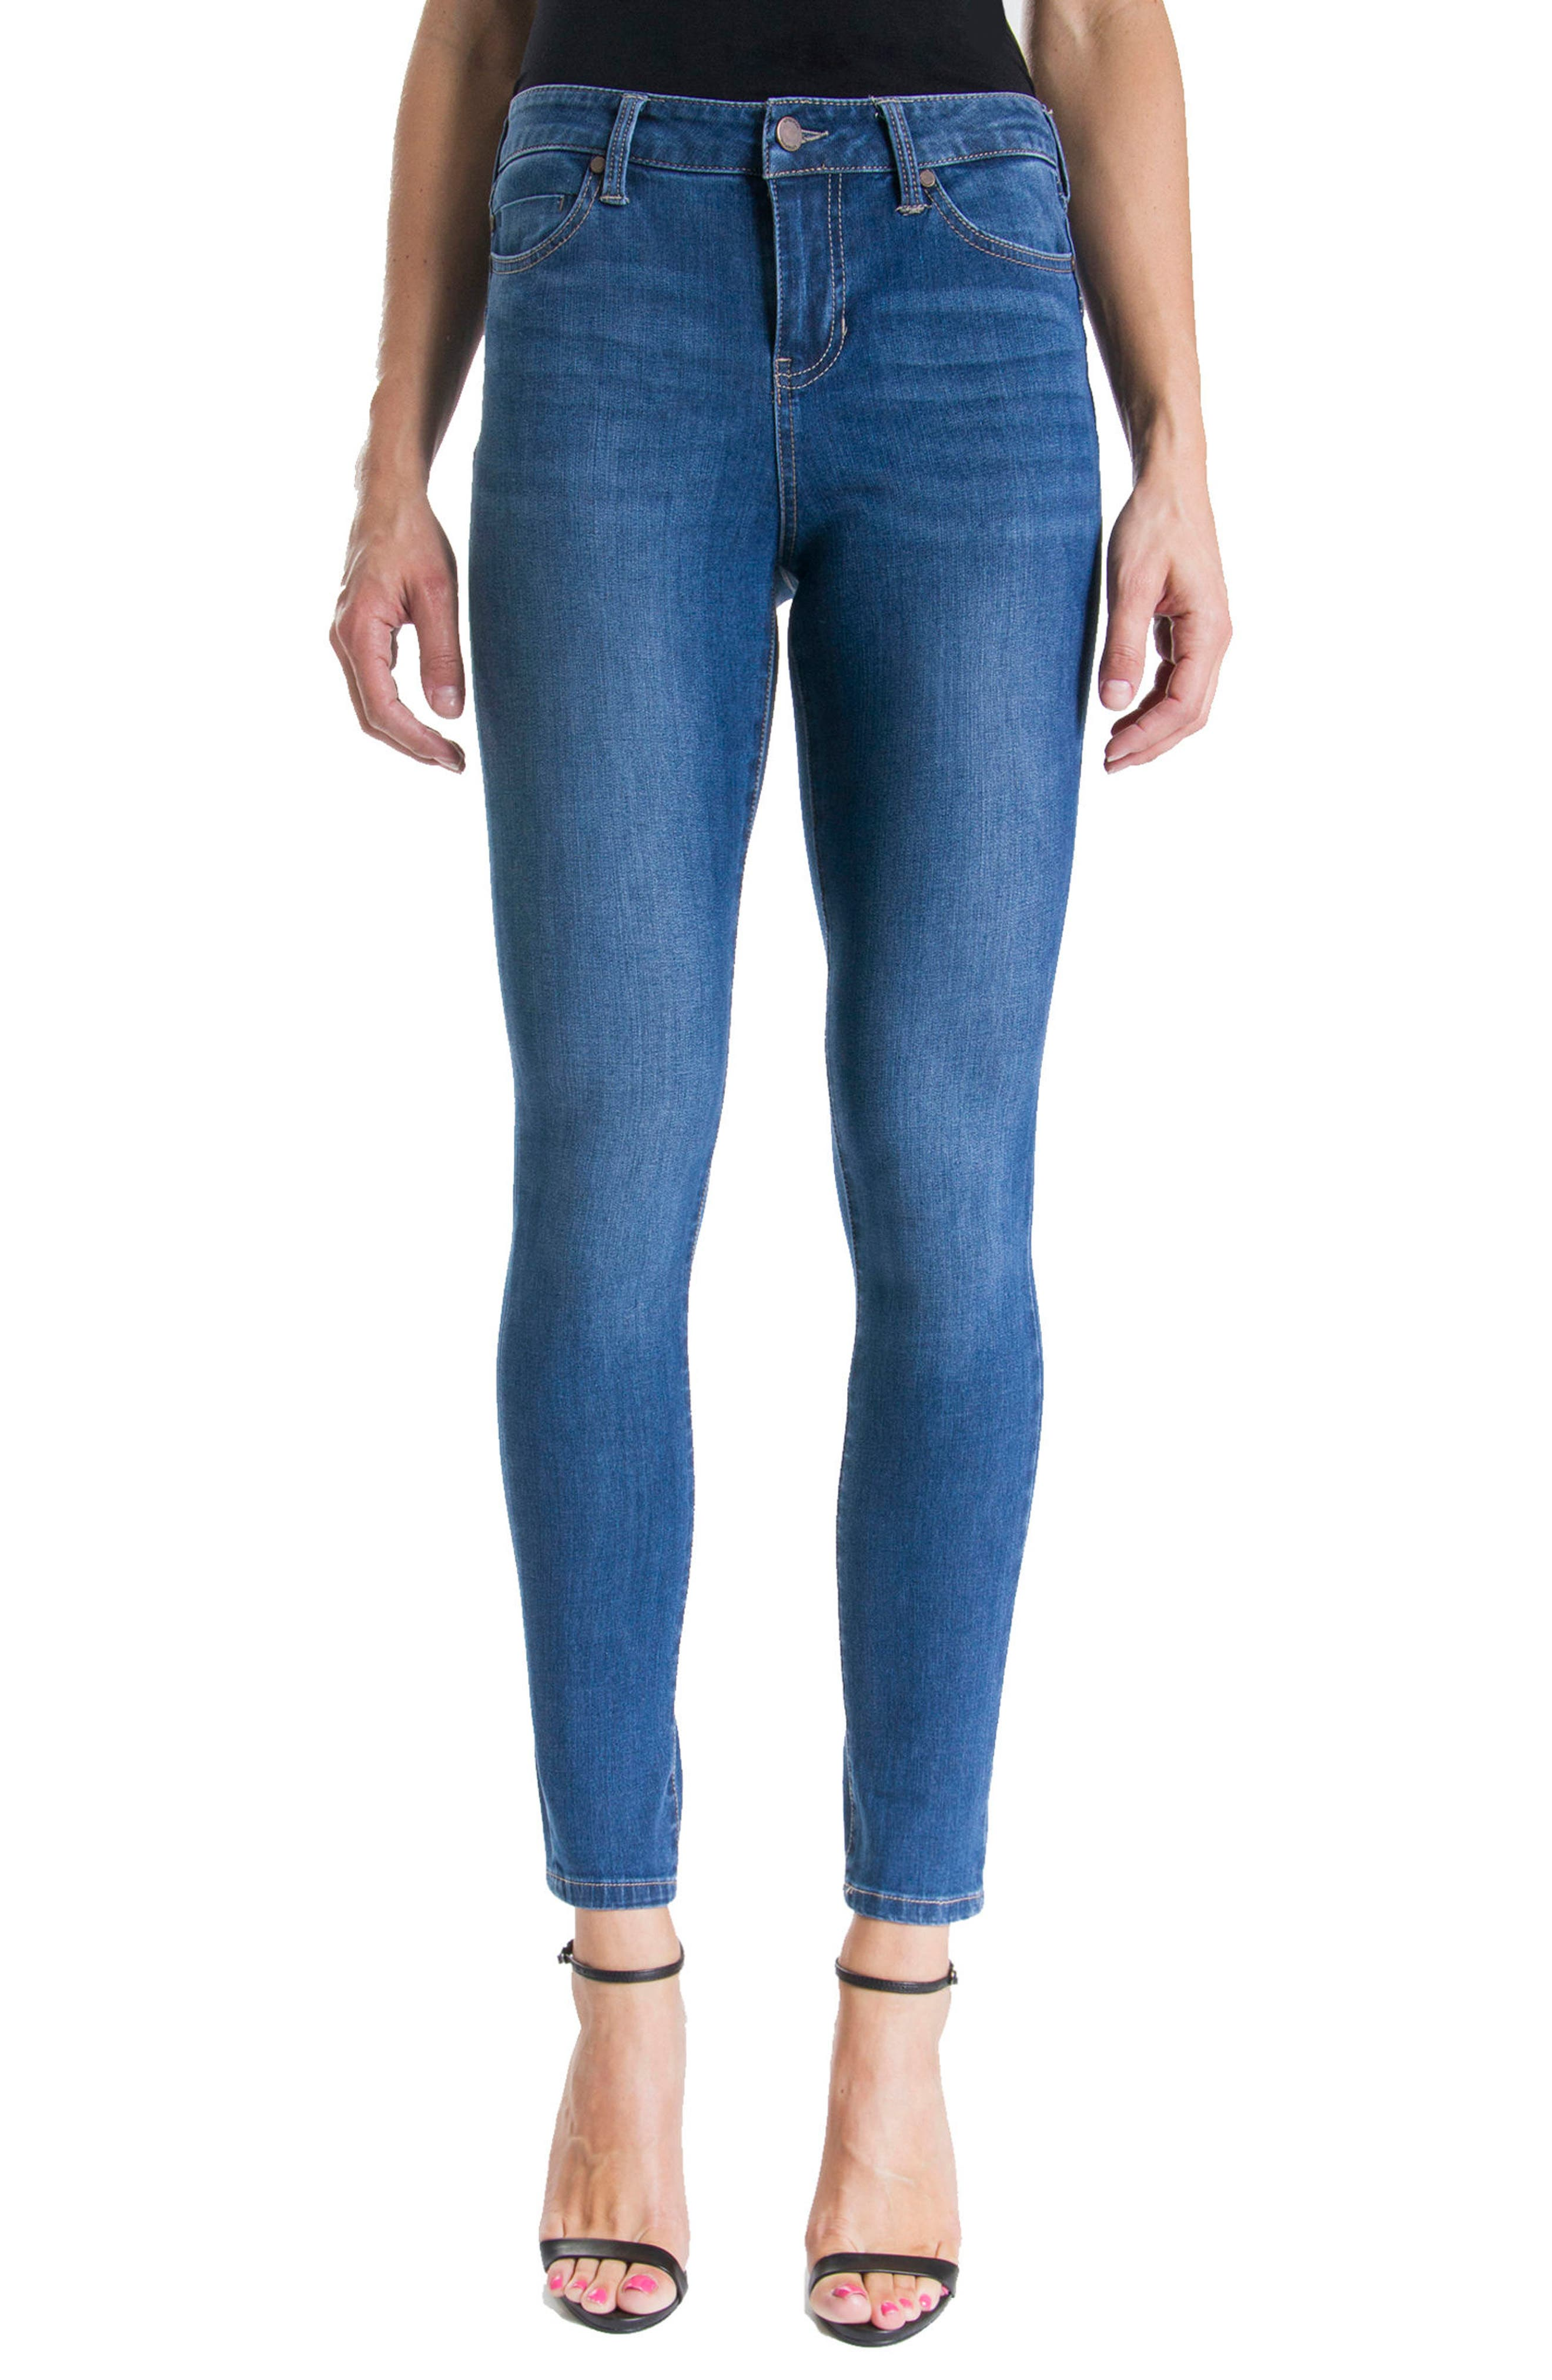 Jeans Company Piper Hugger Lift Sculpt Ankle Skinny Jeans,                             Main thumbnail 3, color,